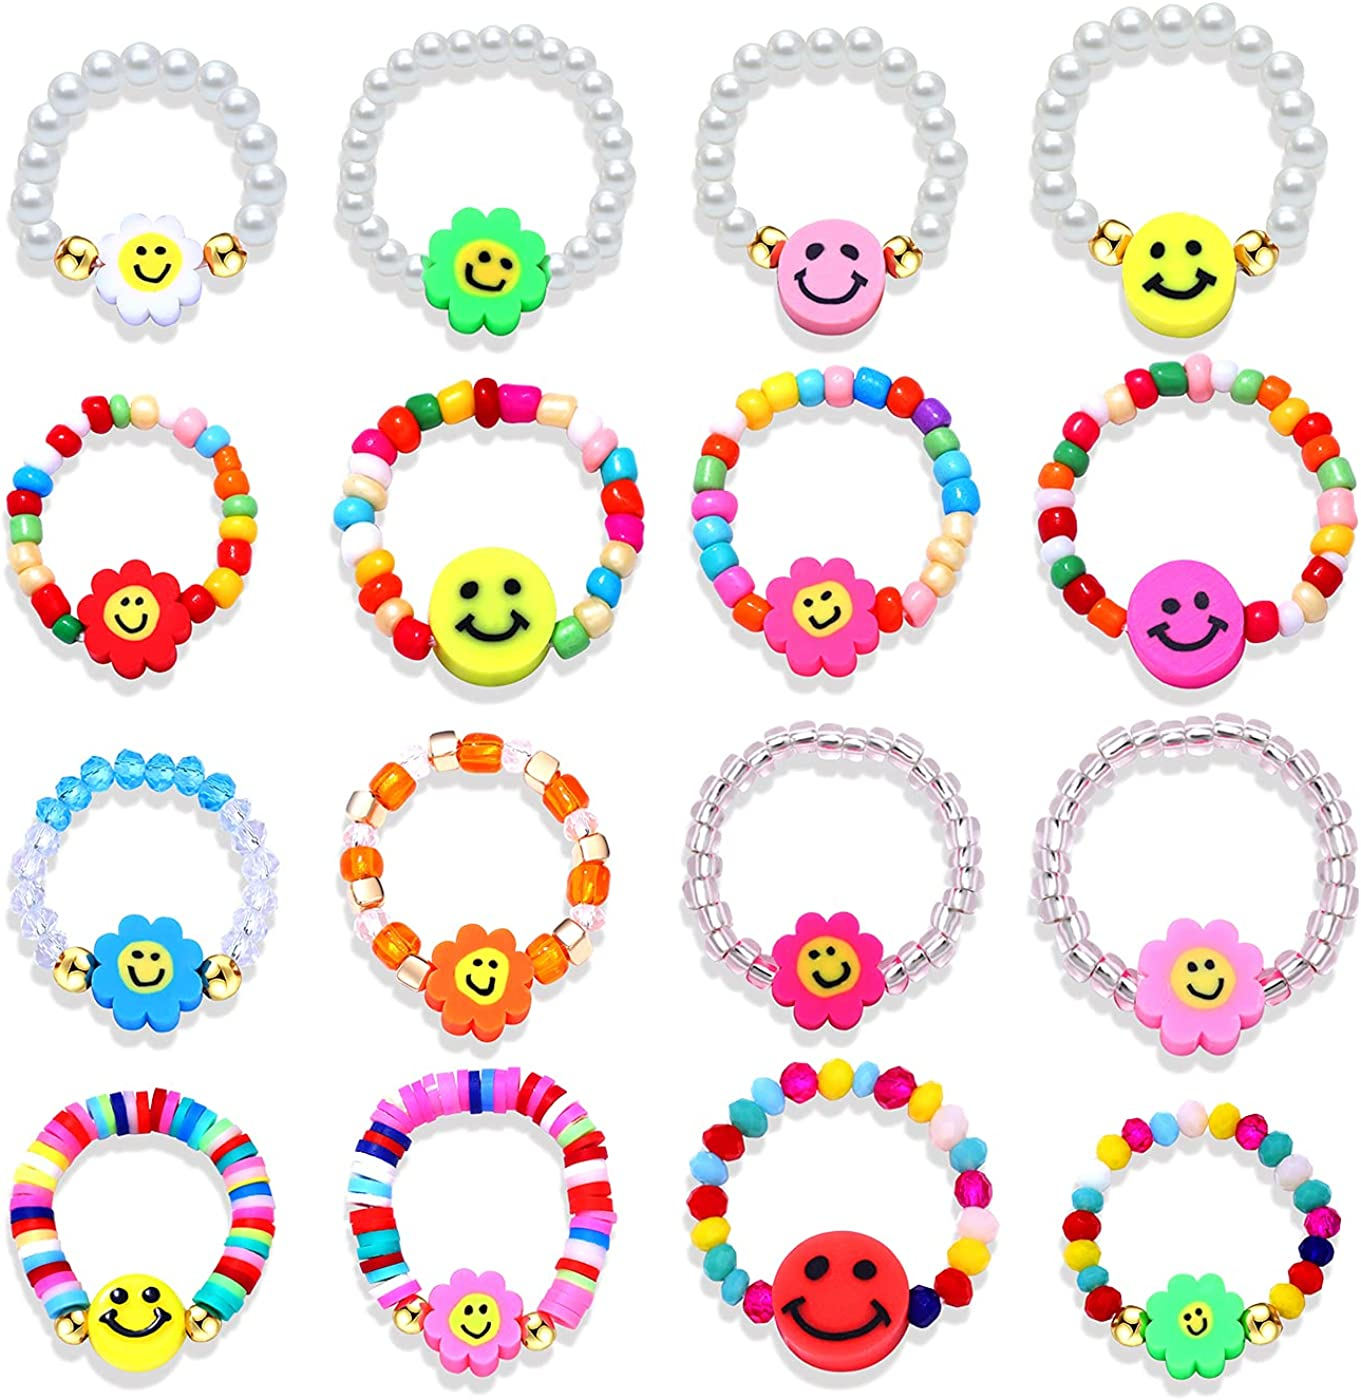 NLCAC Beaded Smiley Face Rings Pearl Handmade Heishi See Max 41% OFF Max 42% OFF Rainbow